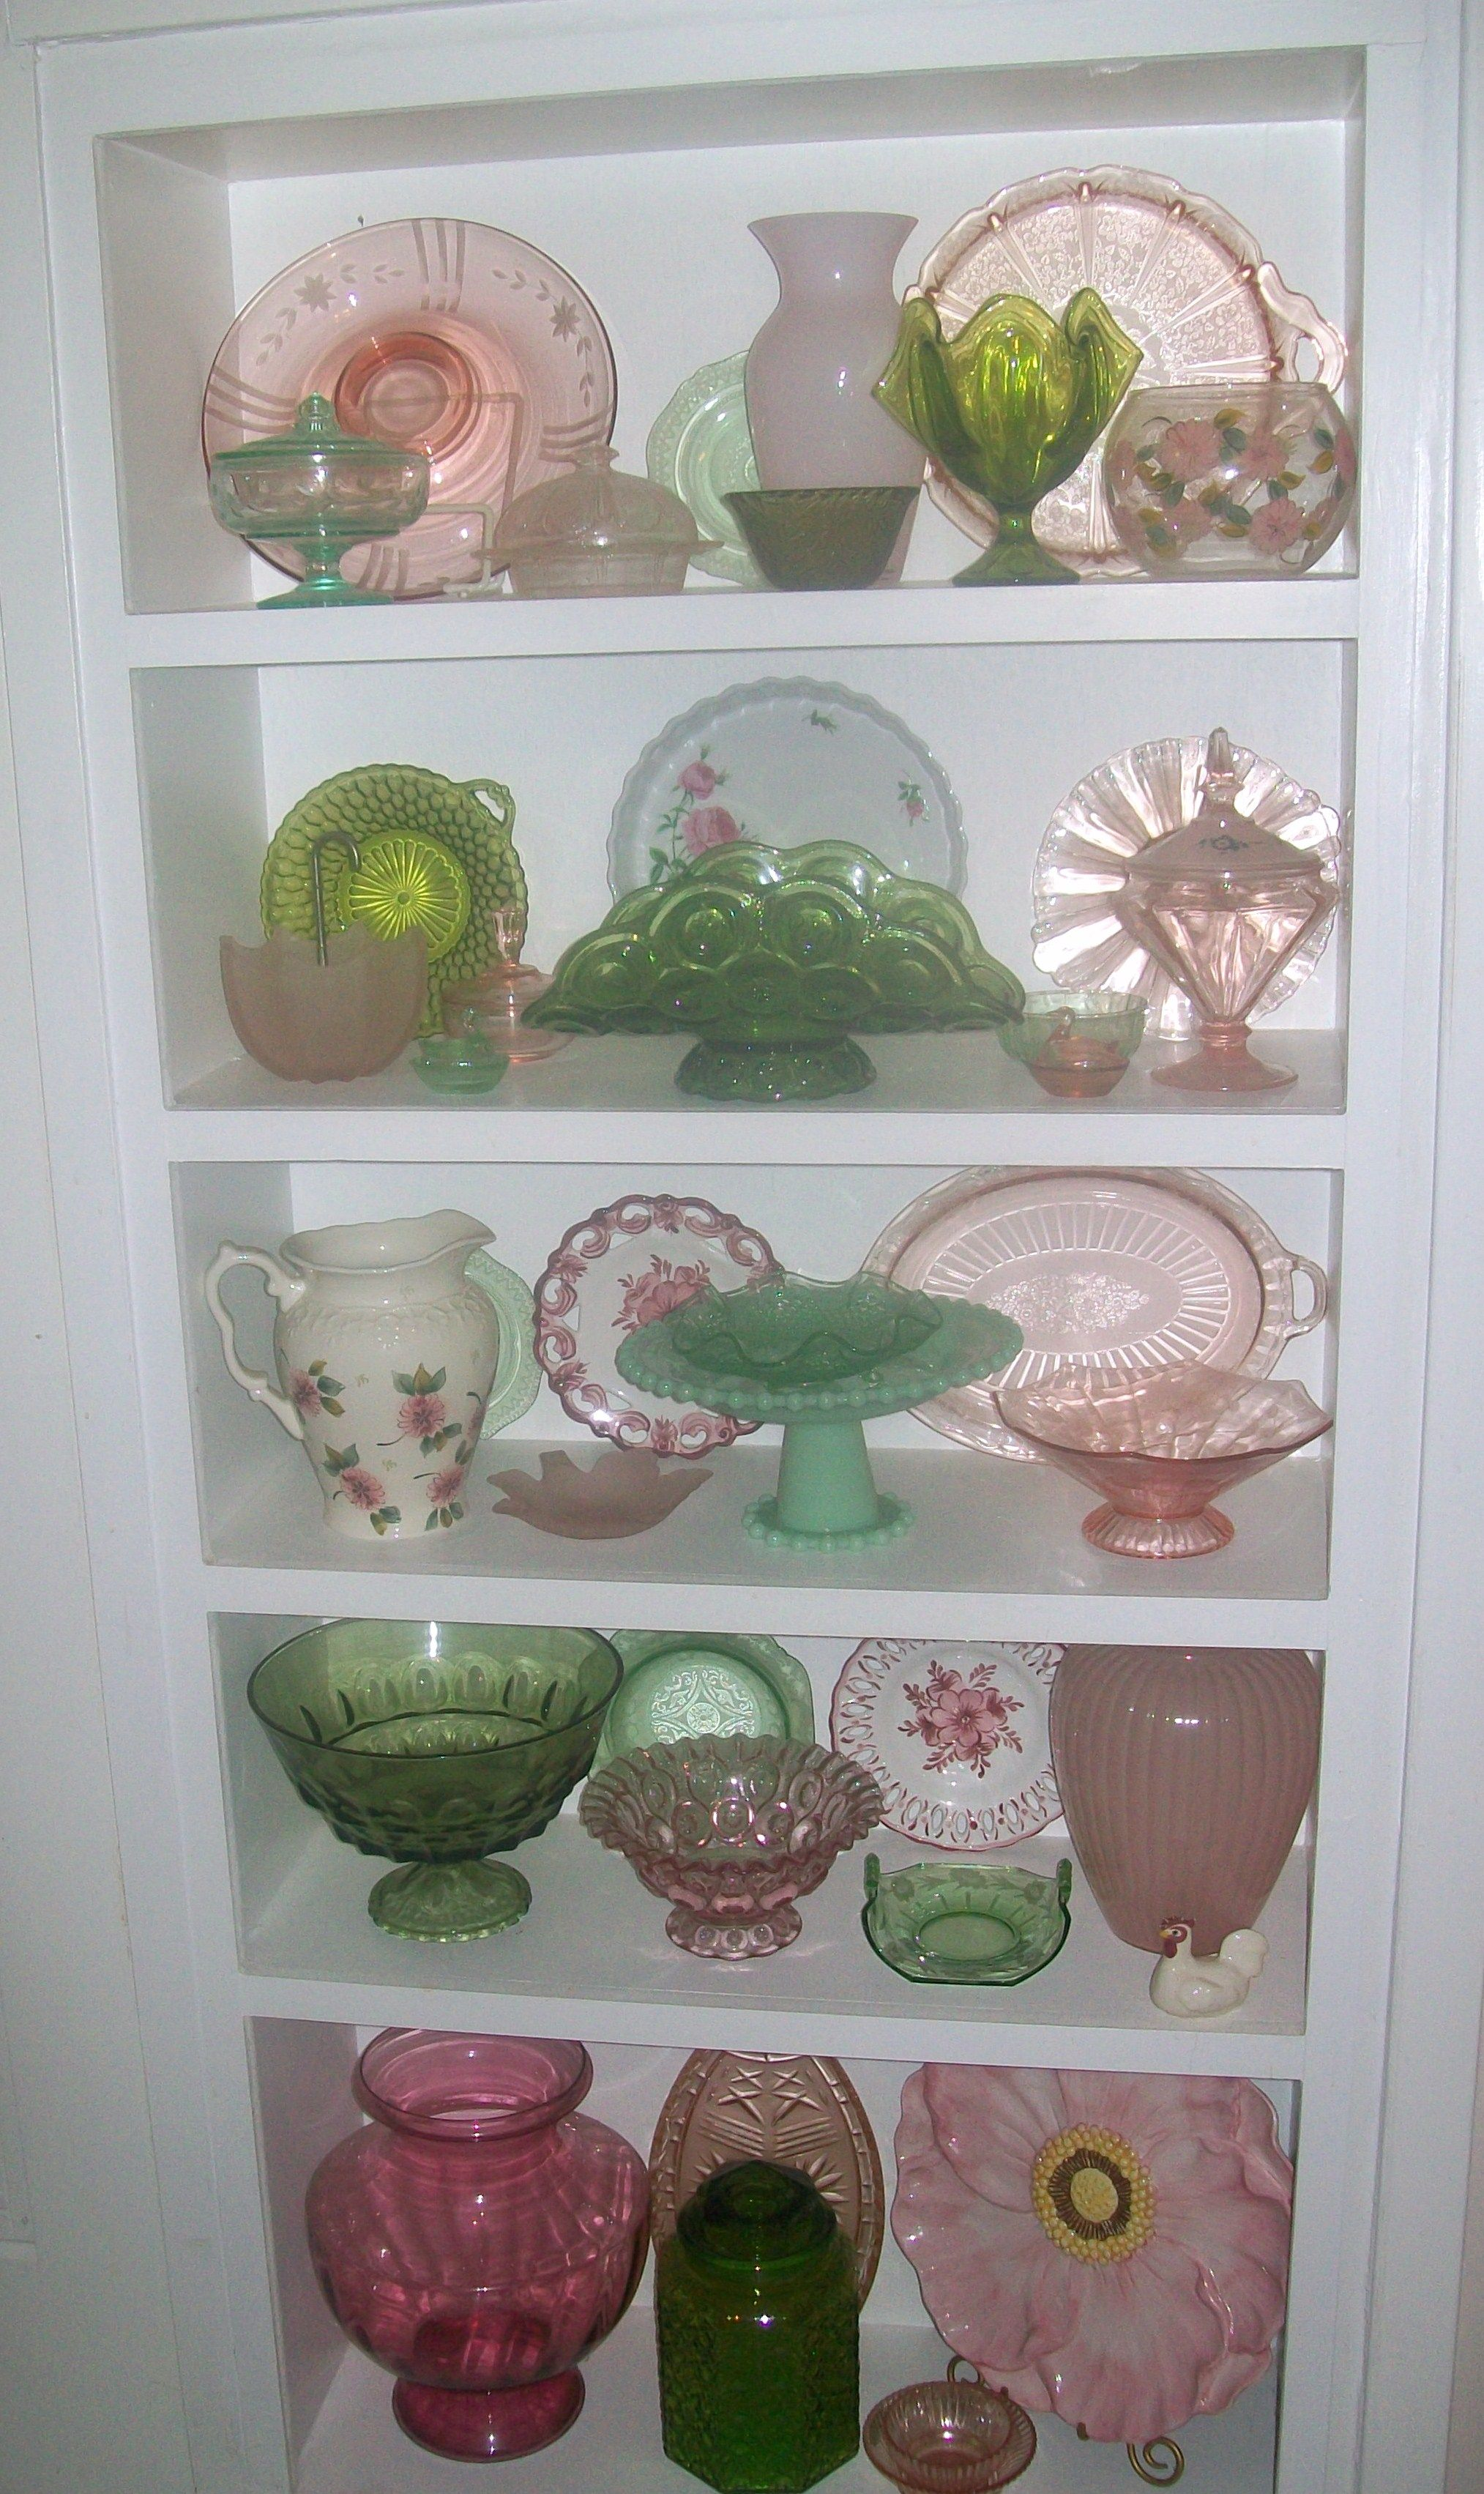 Most Valuable Depression Glass Patterns Amazing Decorating